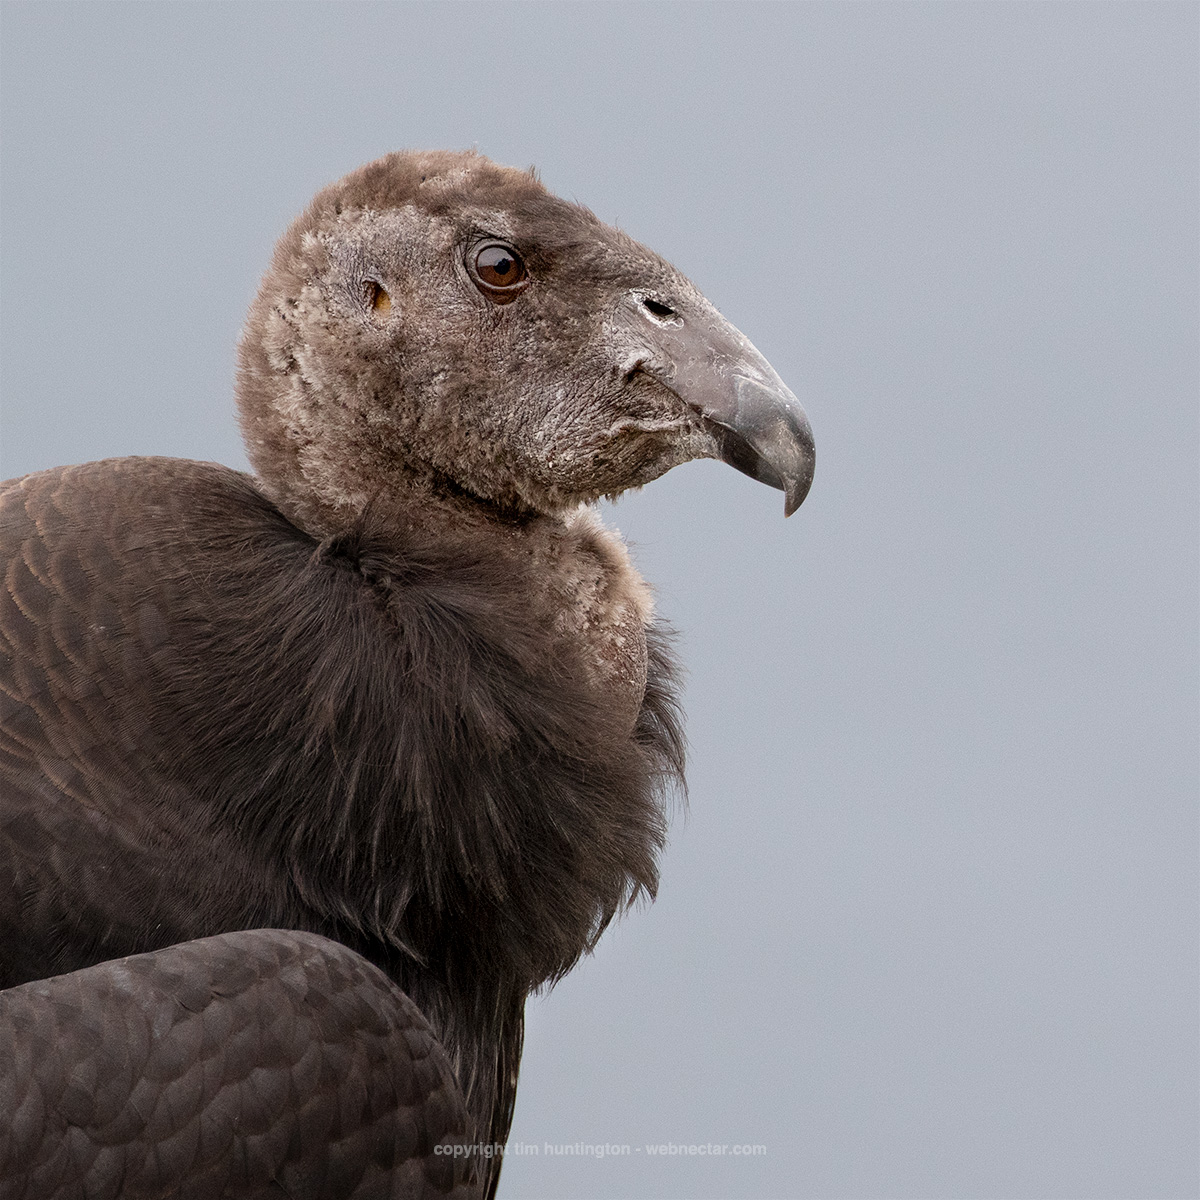 California condor 1003, a month or so after first leaving their nest, rests on a Big Sur cliff.